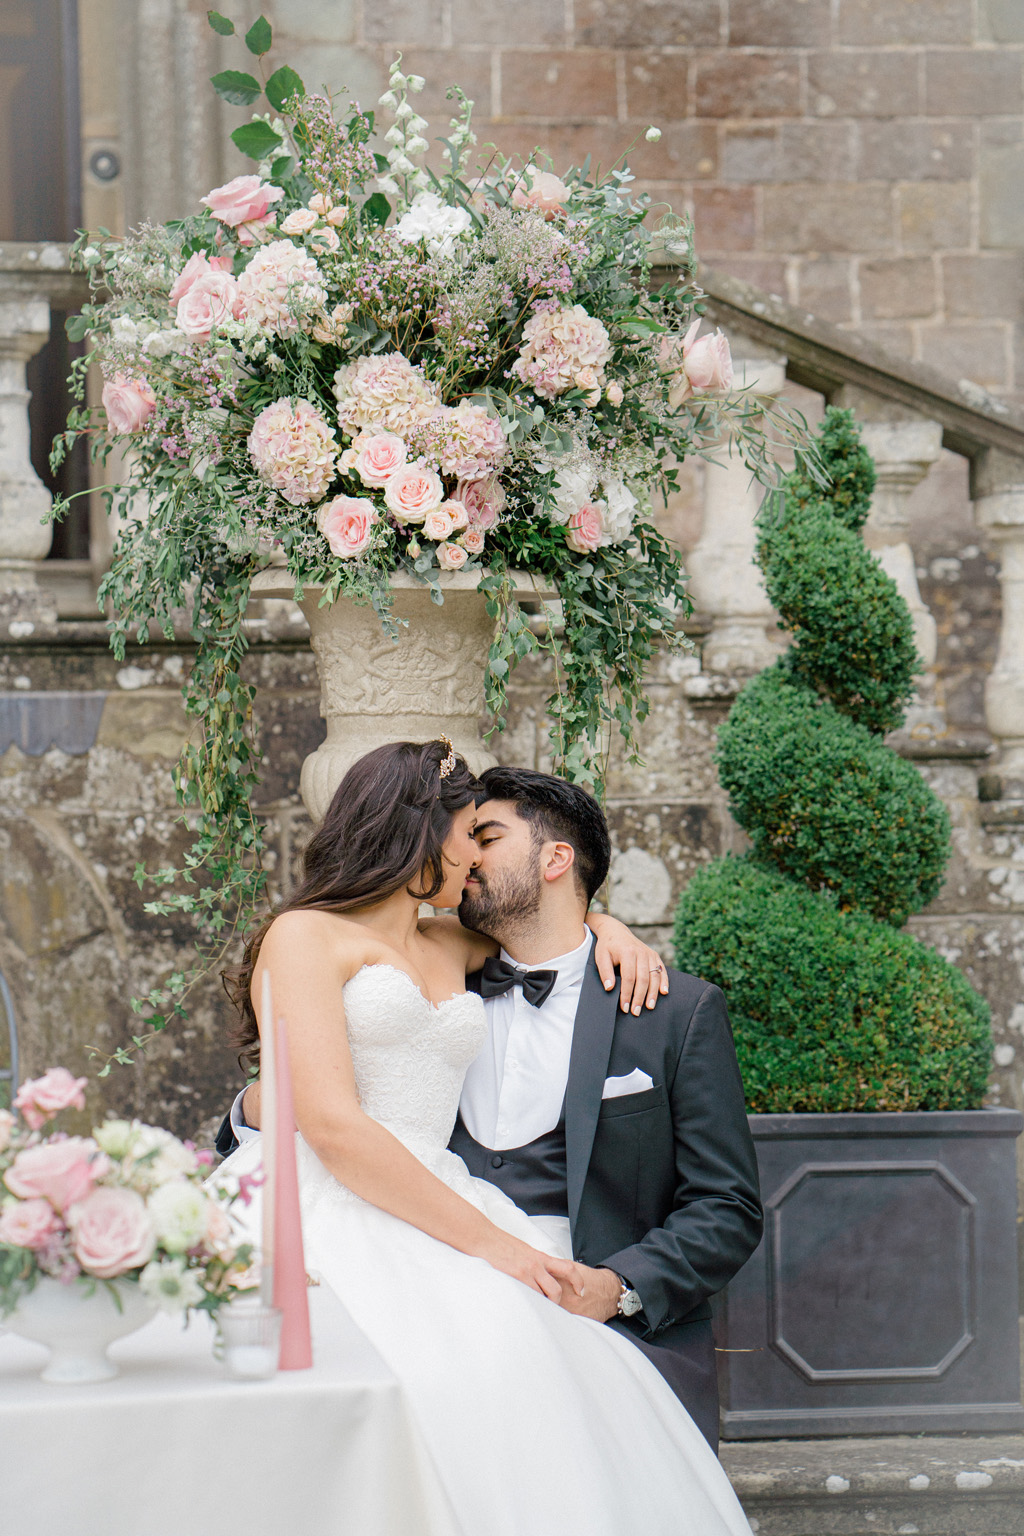 Clearwell Castle bride and groom photoshoot with white and pink floral inspiration